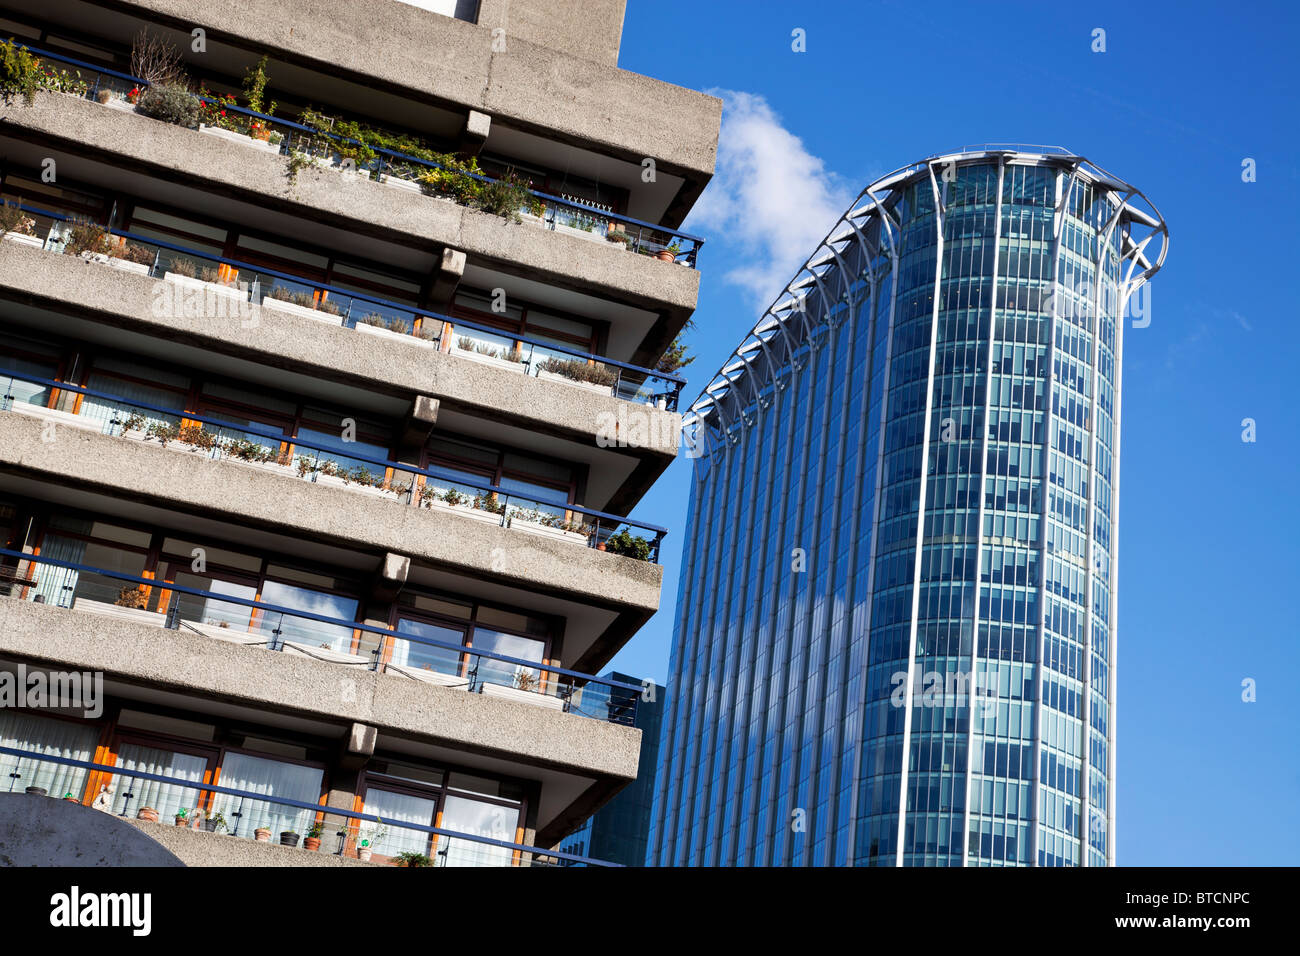 Barbican Estate and Citypoint building in London, UK - Stock Image